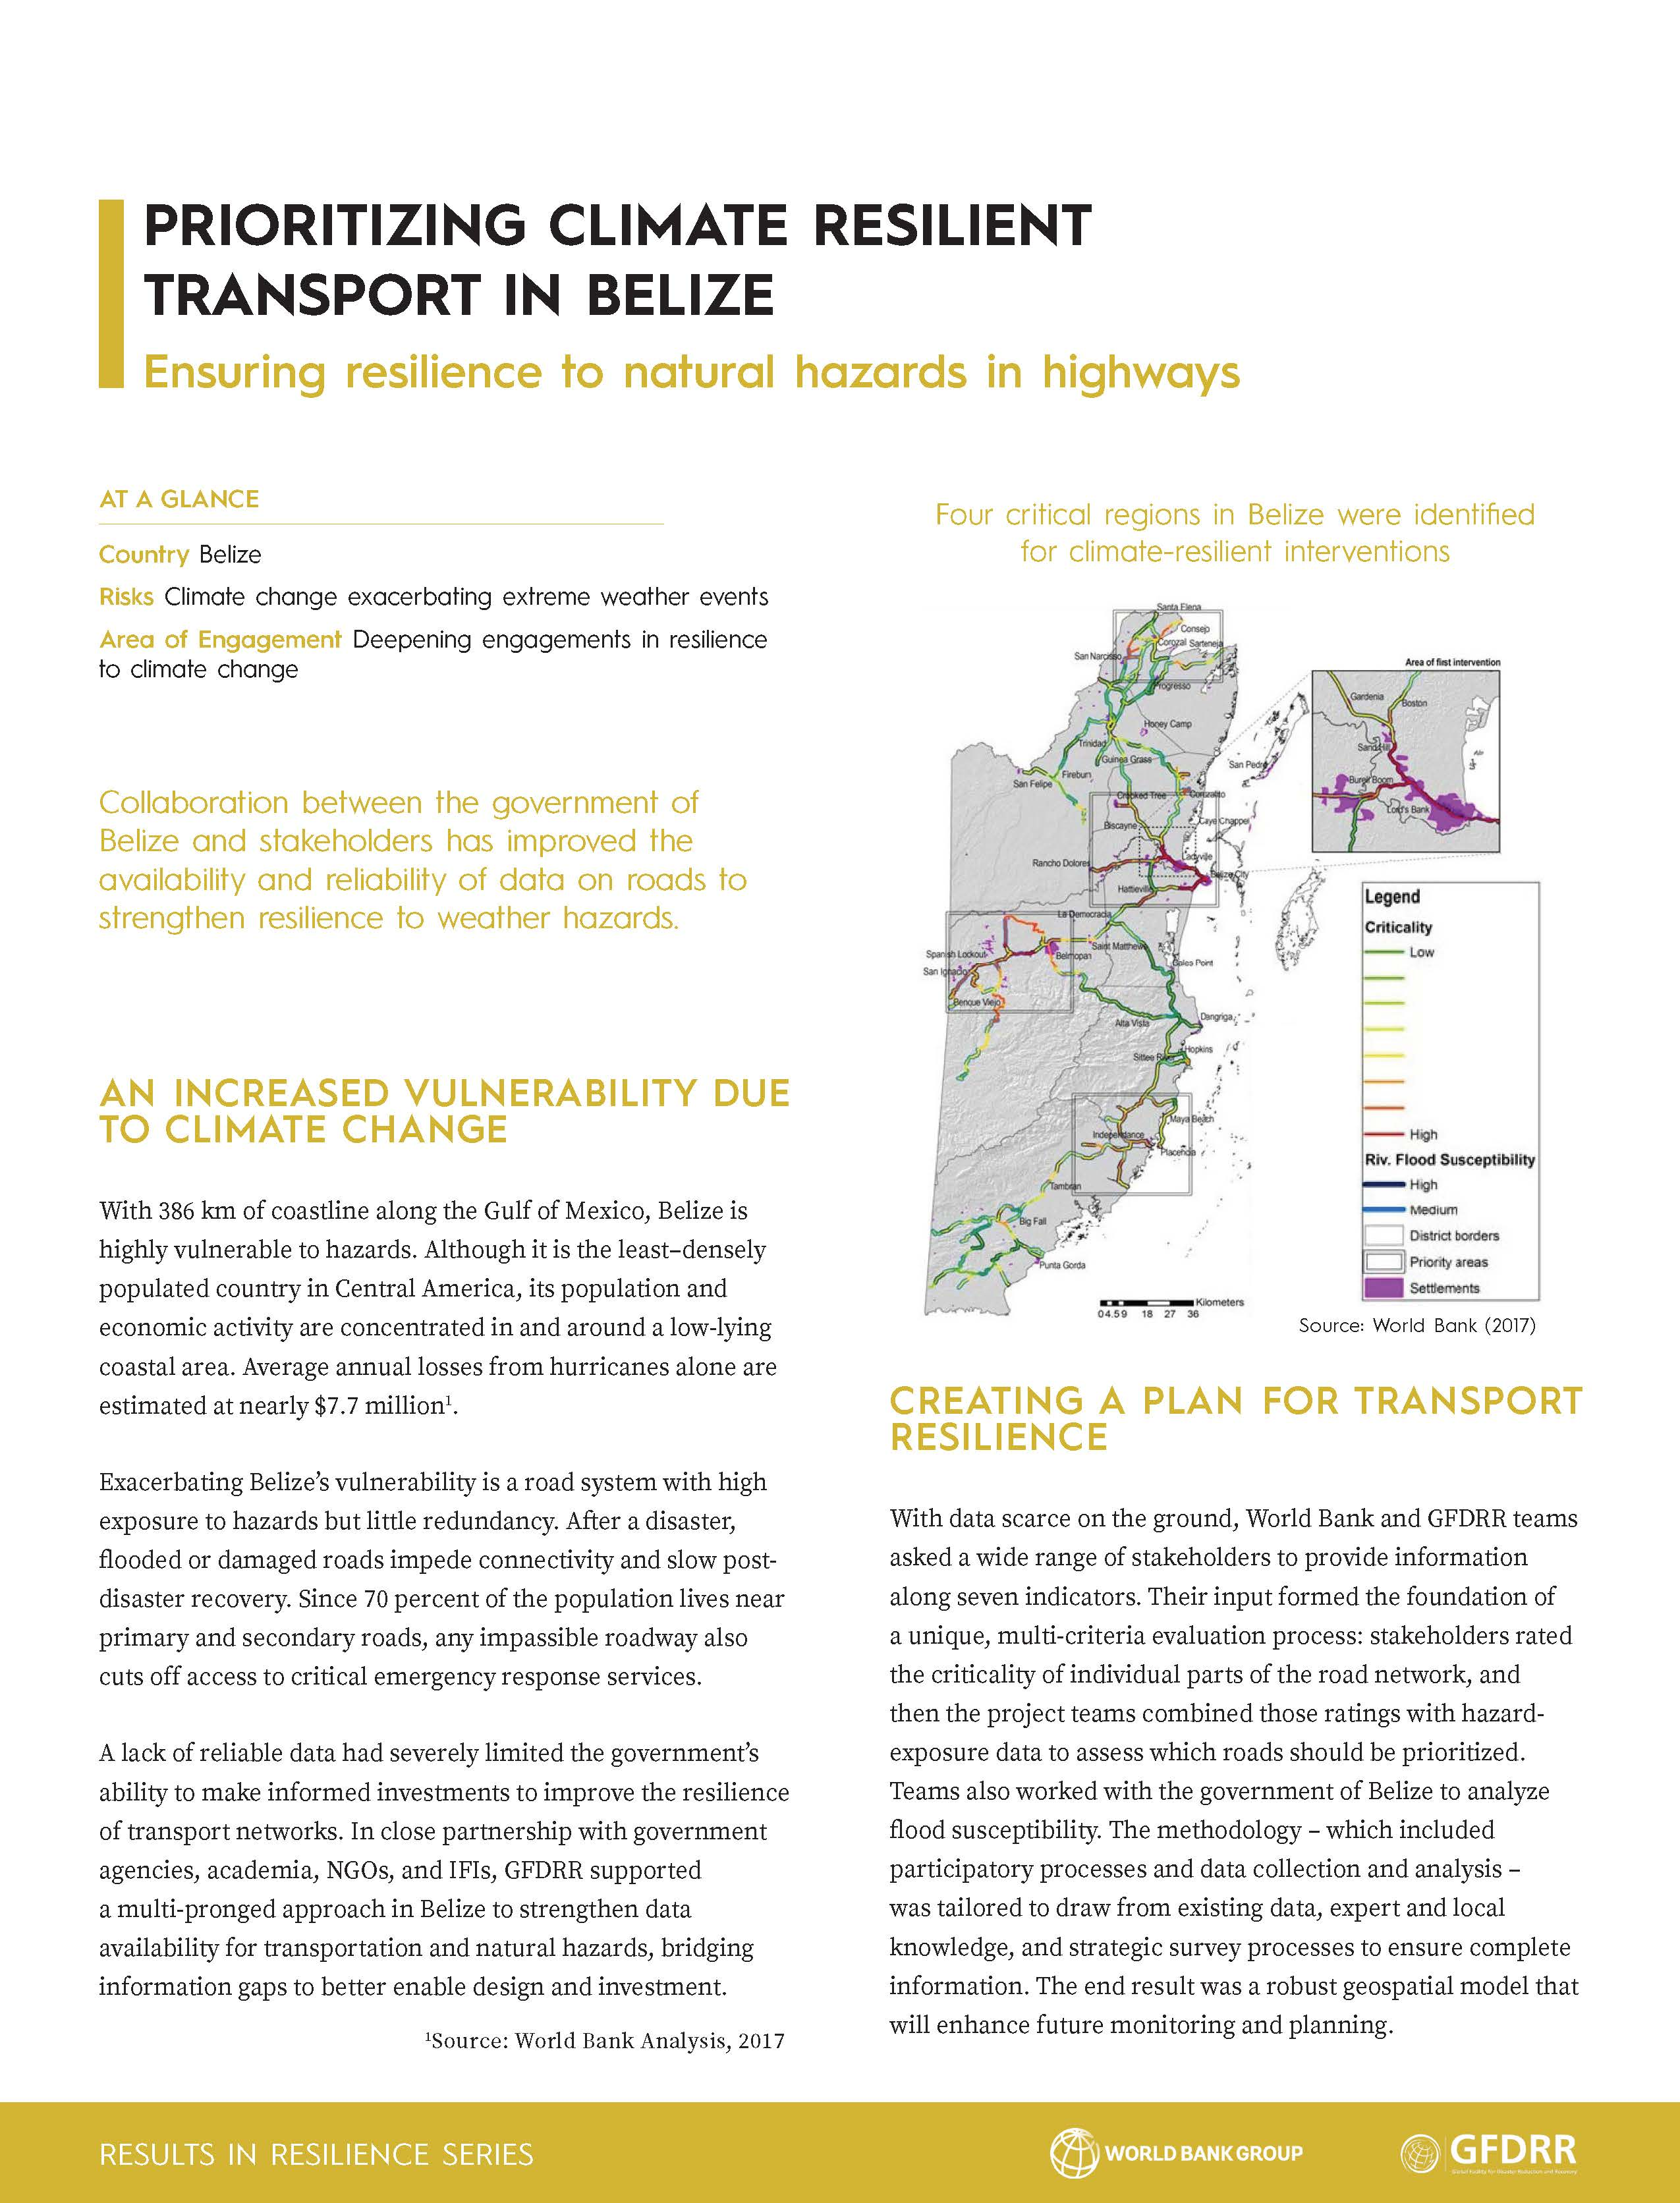 Results in Resilience: Prioritizing Climate Resilient Transport in Belize